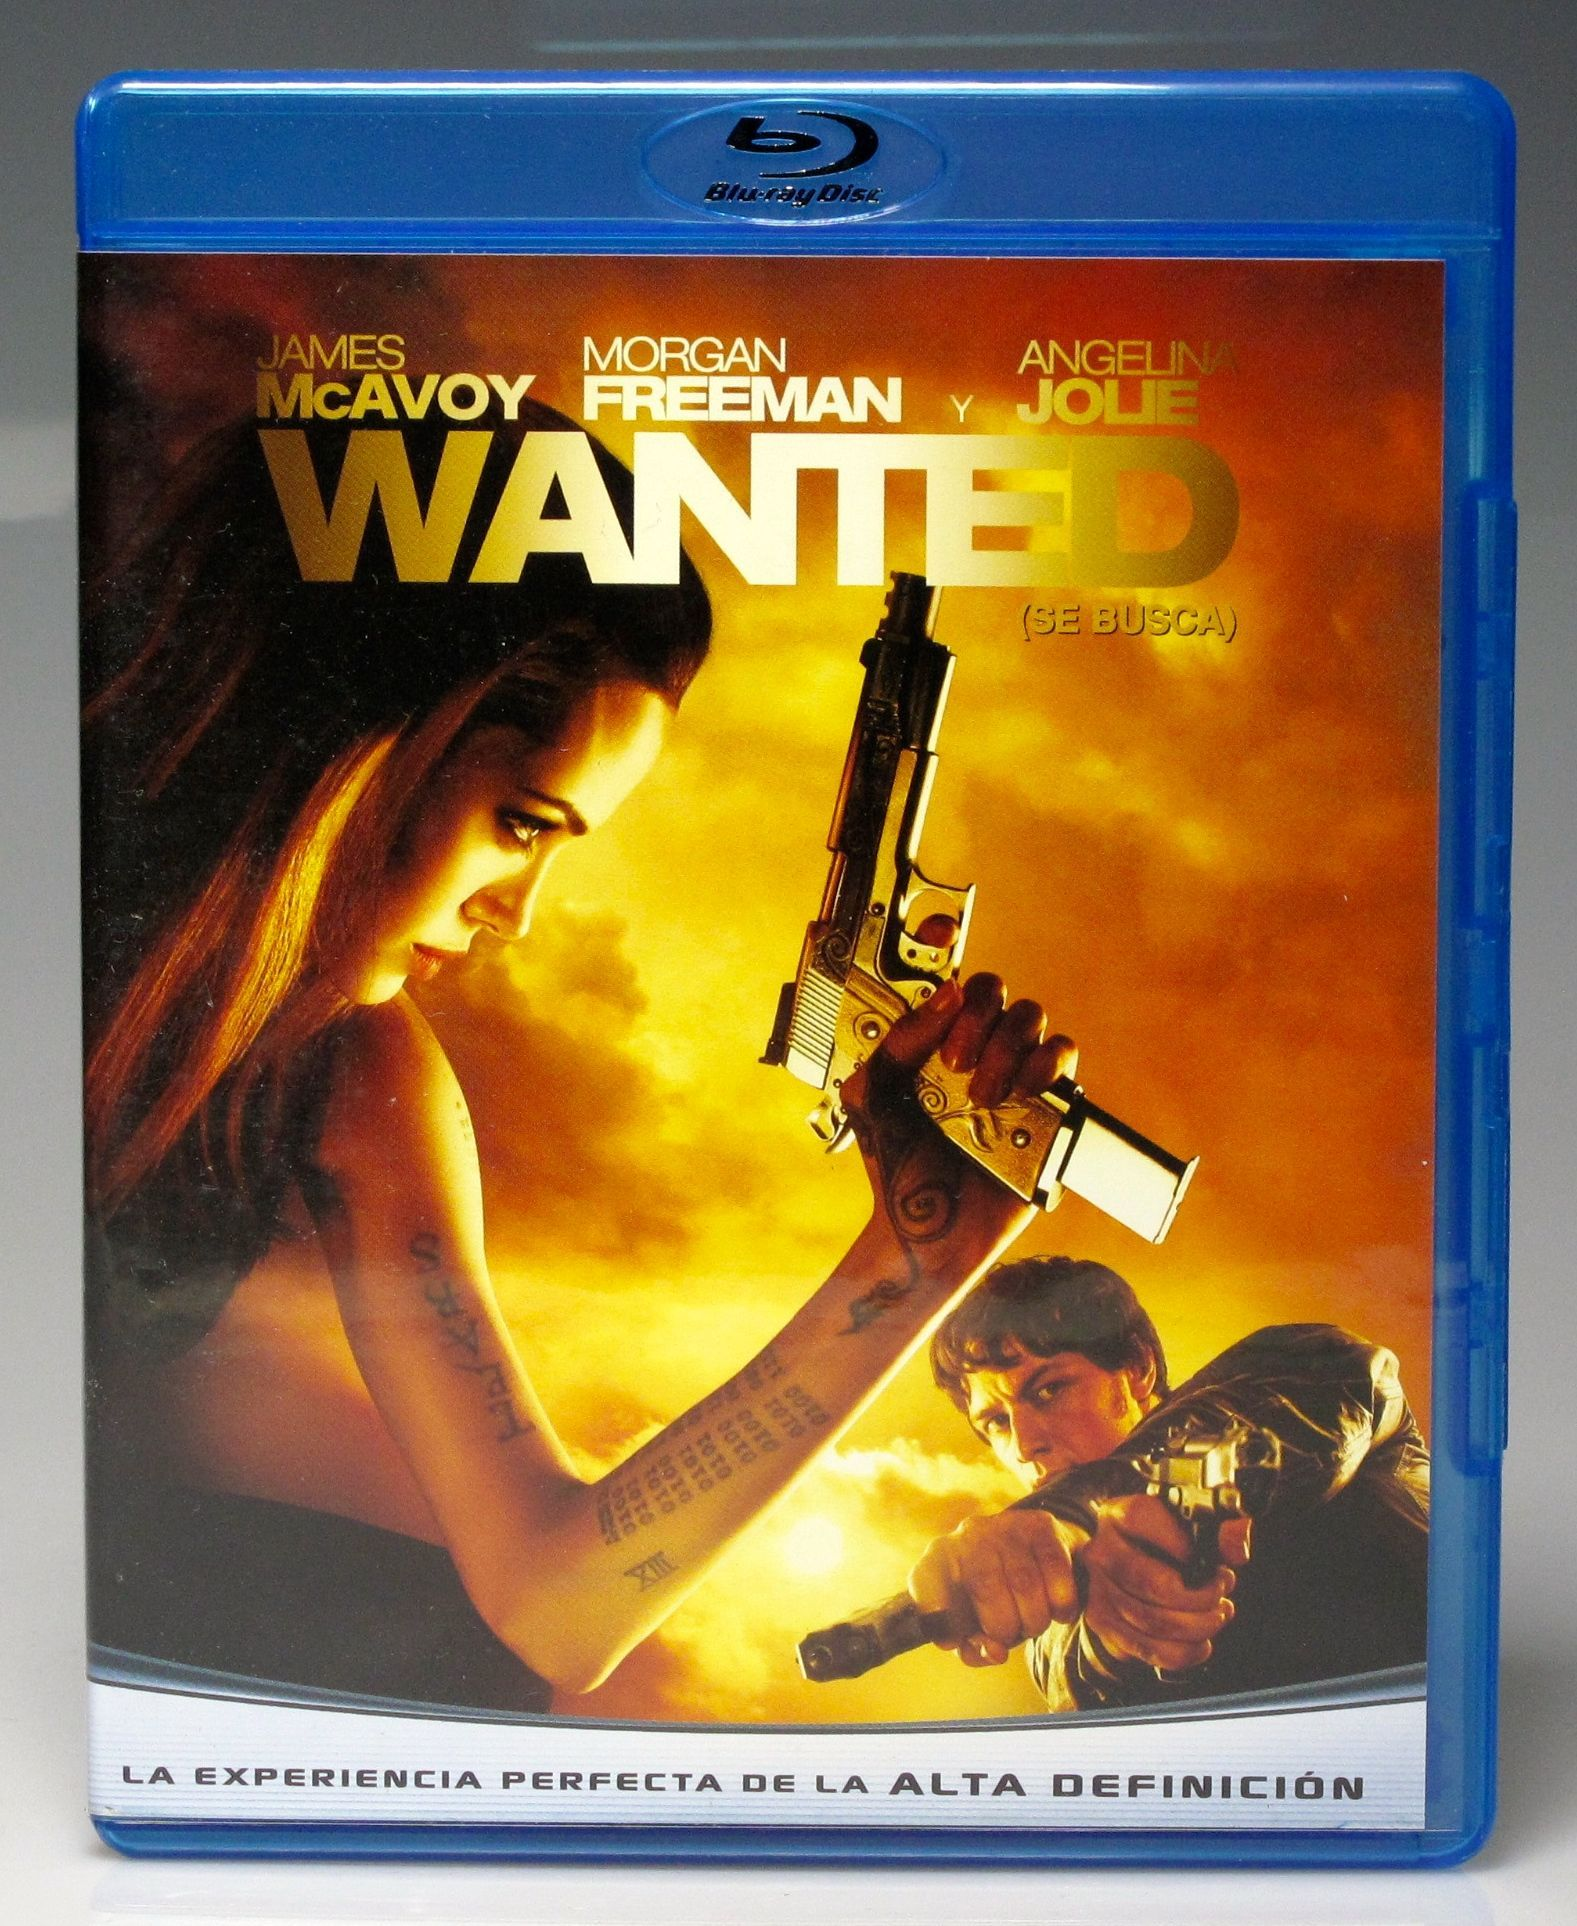 Blu_ray_Wantede